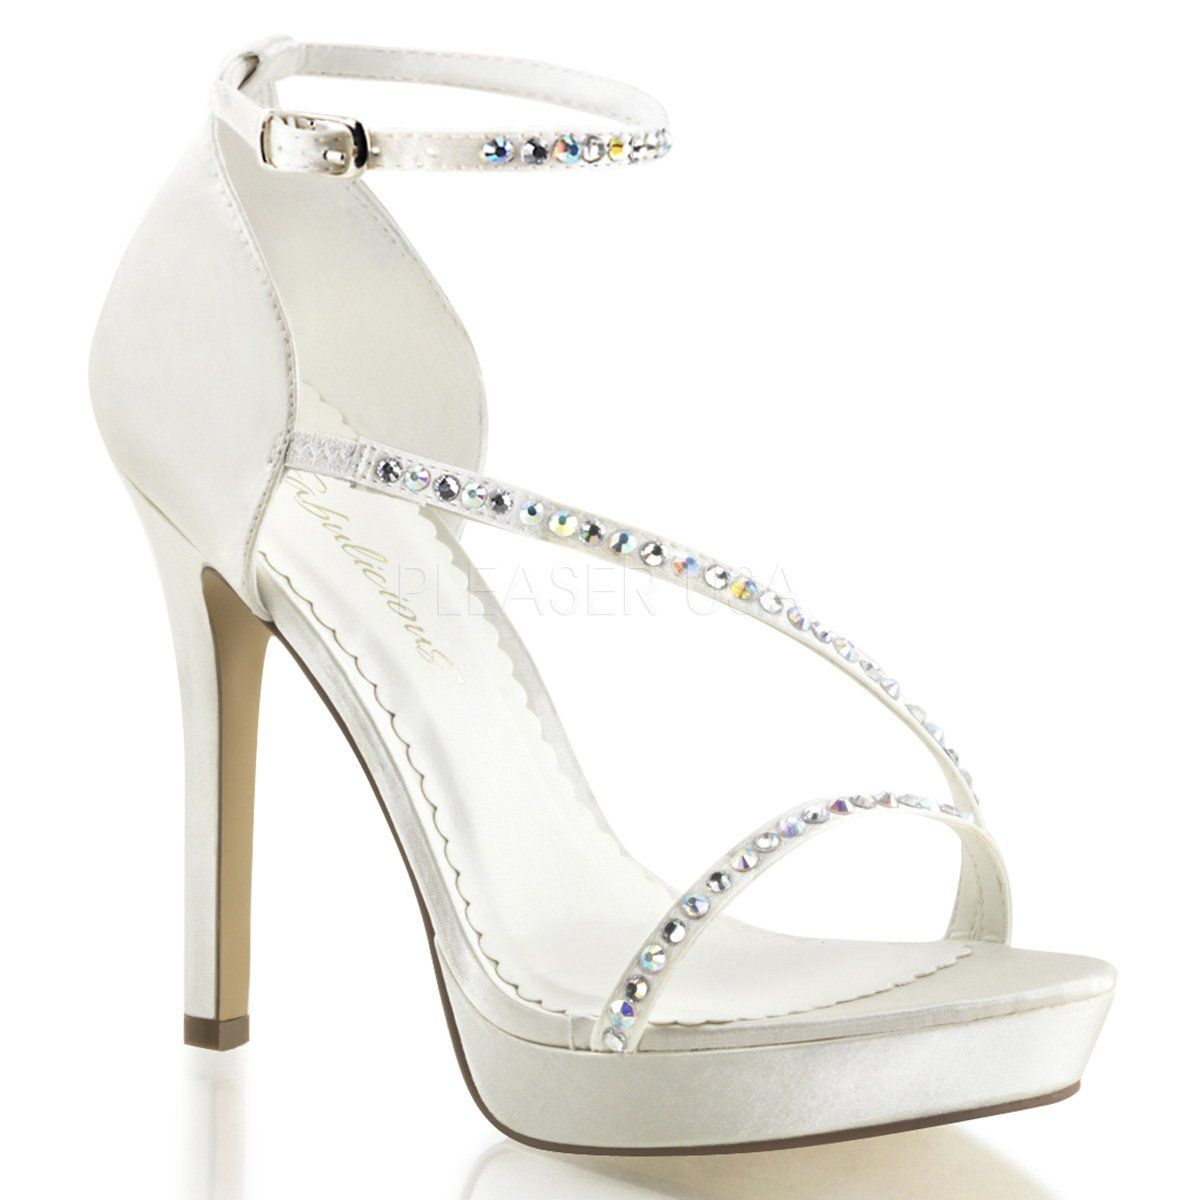 4 3 4 Inch Heel 1 Inch Pf Closed Back Ankle Strap Sandal 4 3 4 Inch 12 1cm Heel 1 Inch 2 5cm Platform Closed Rhinestone Sandals Bridal Shoes Satin Shoes